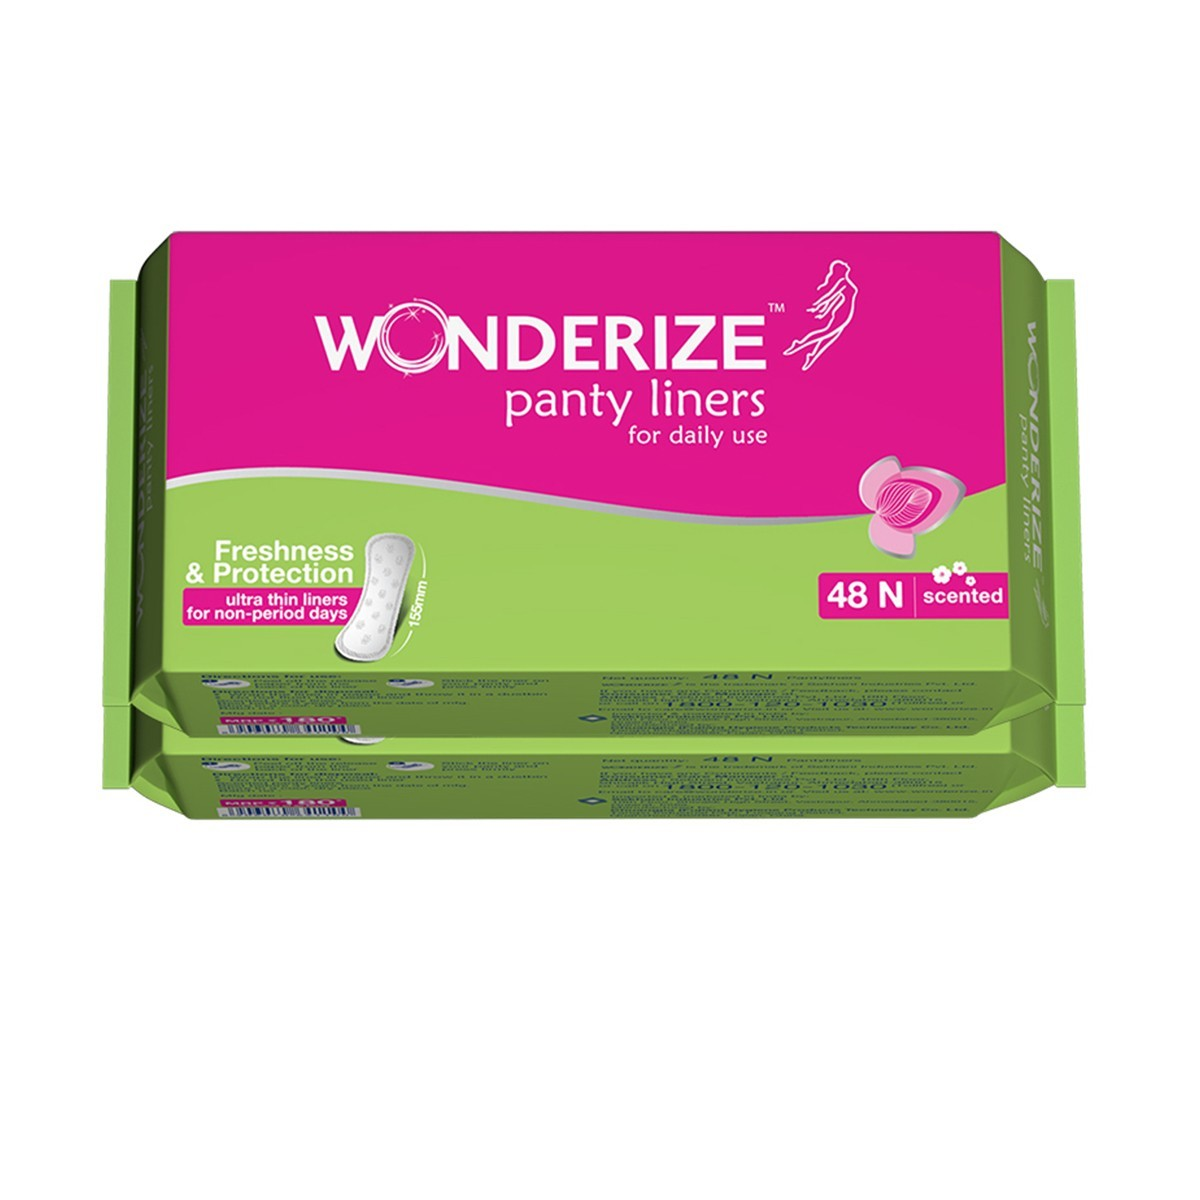 Wonderize Panty Liners 48n (Combo of 2)